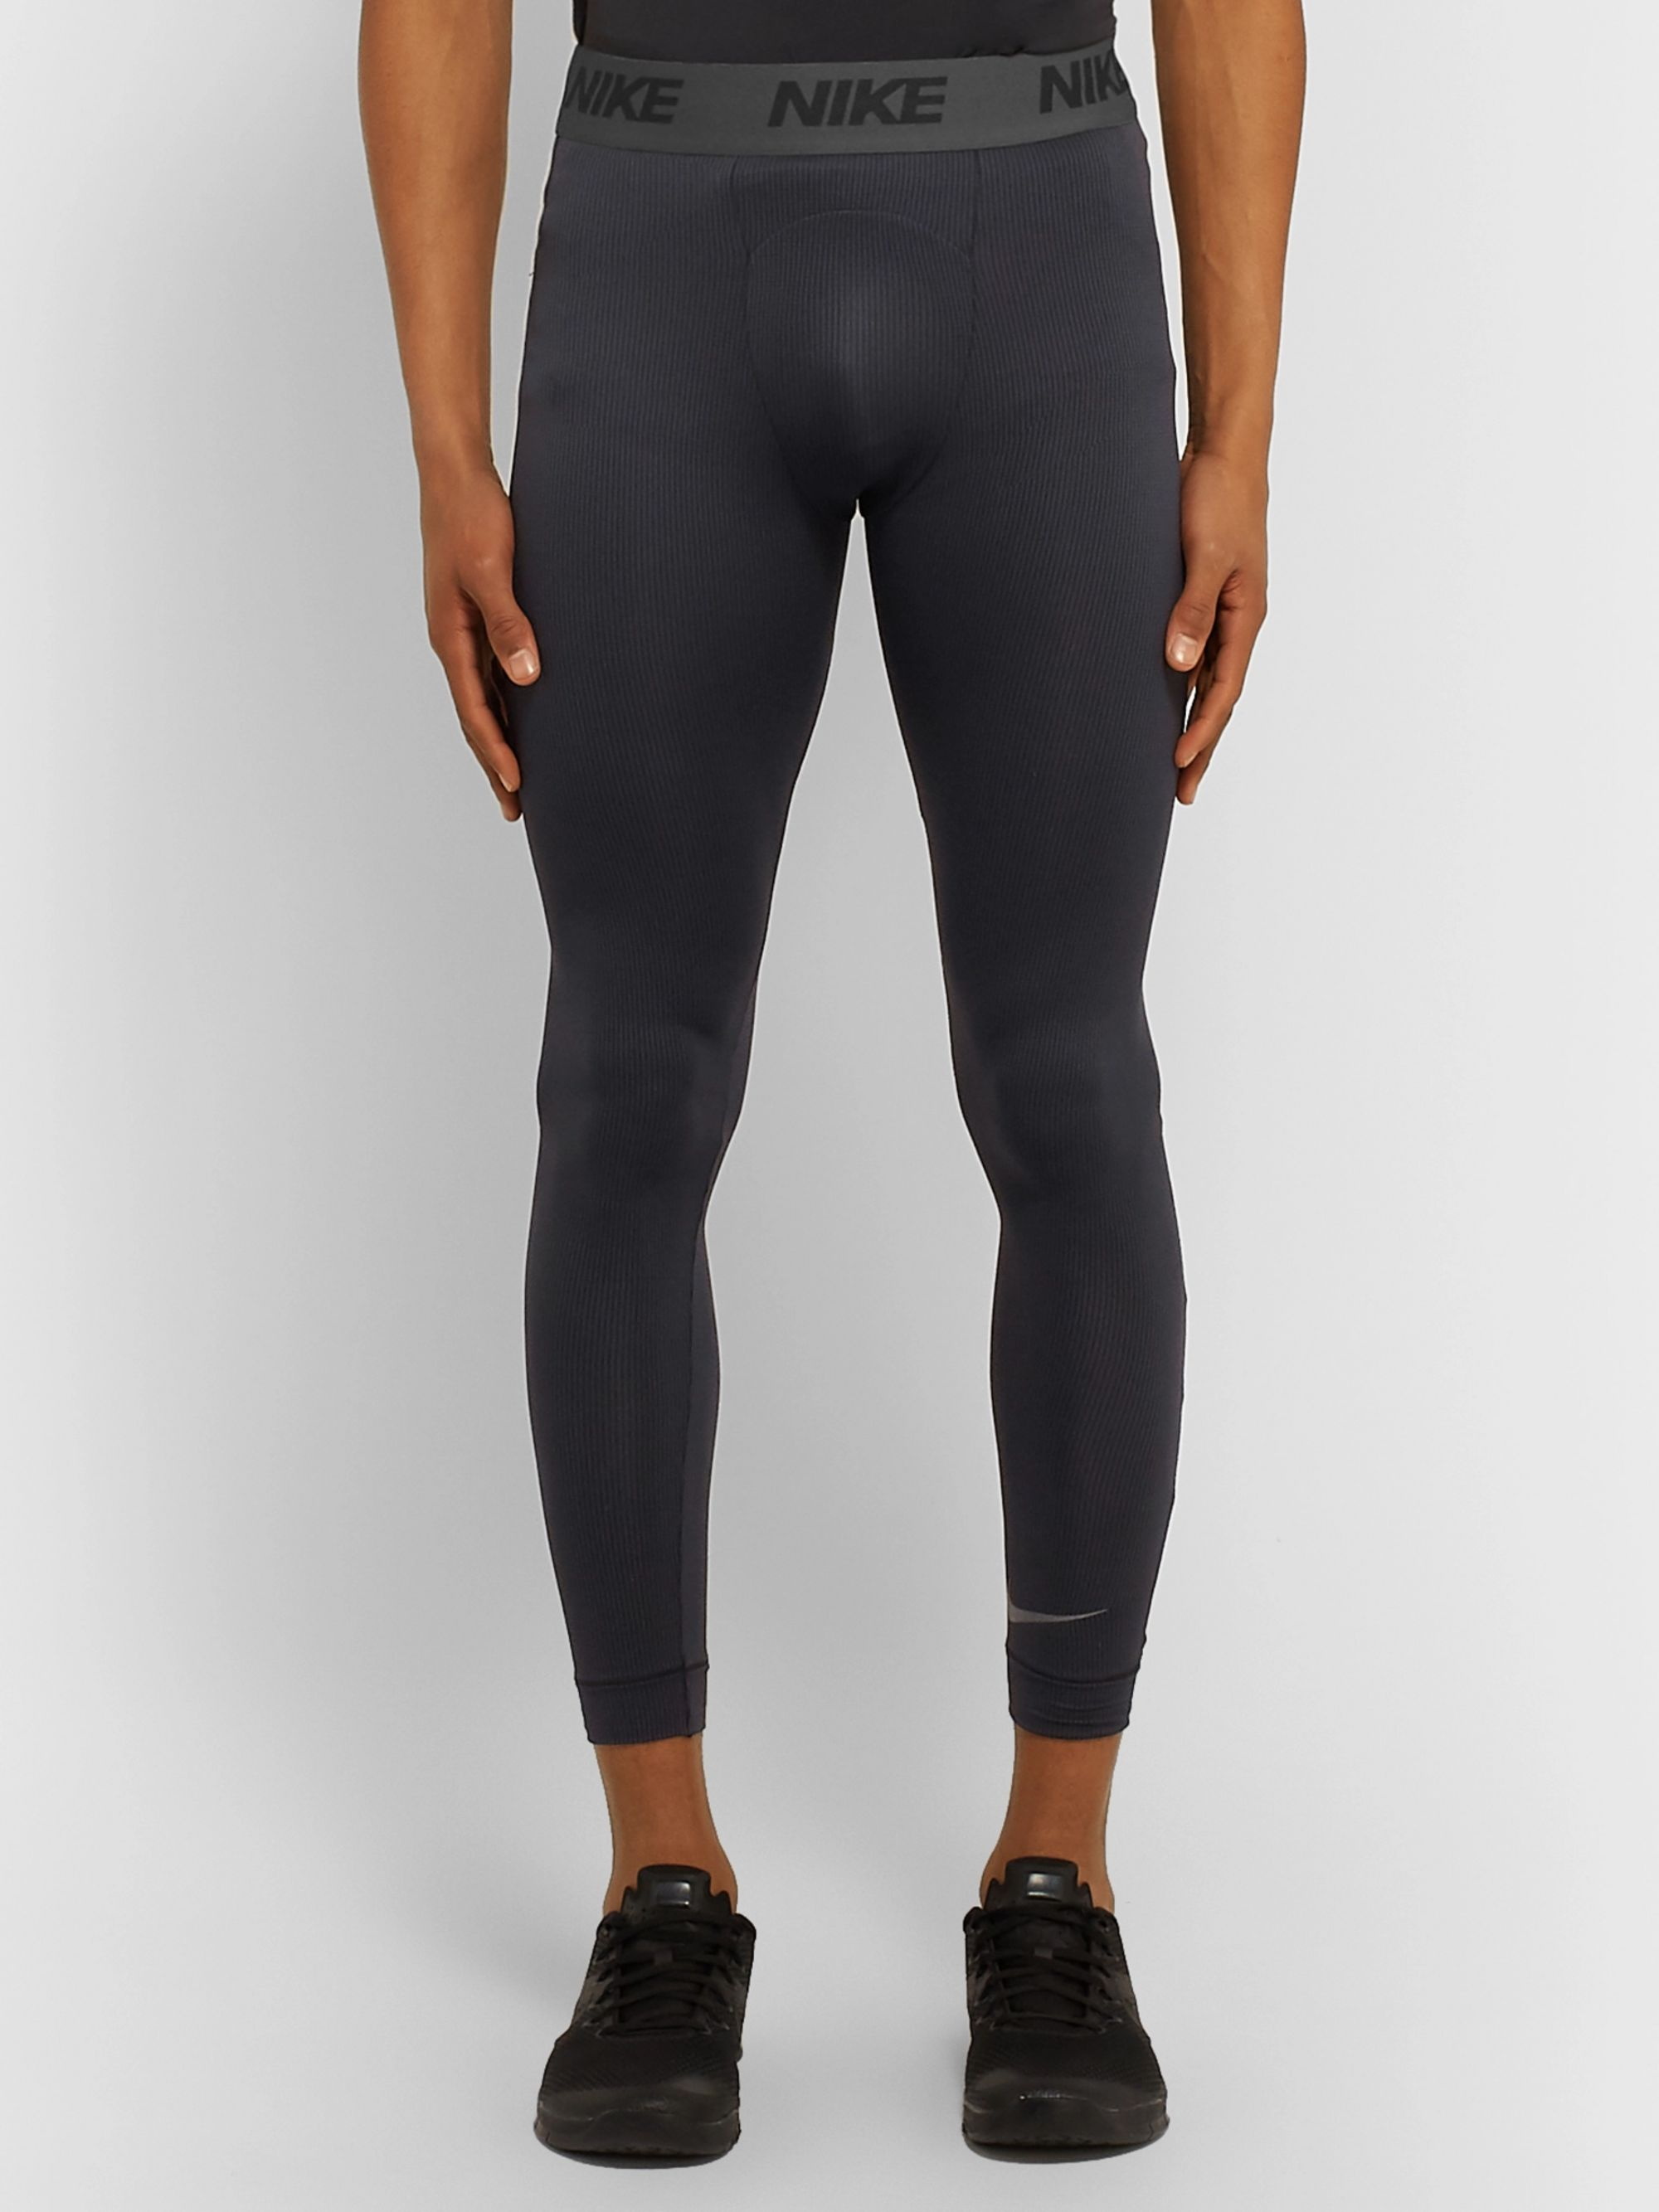 Nike Training Utility Dri-FIT Compression Tights